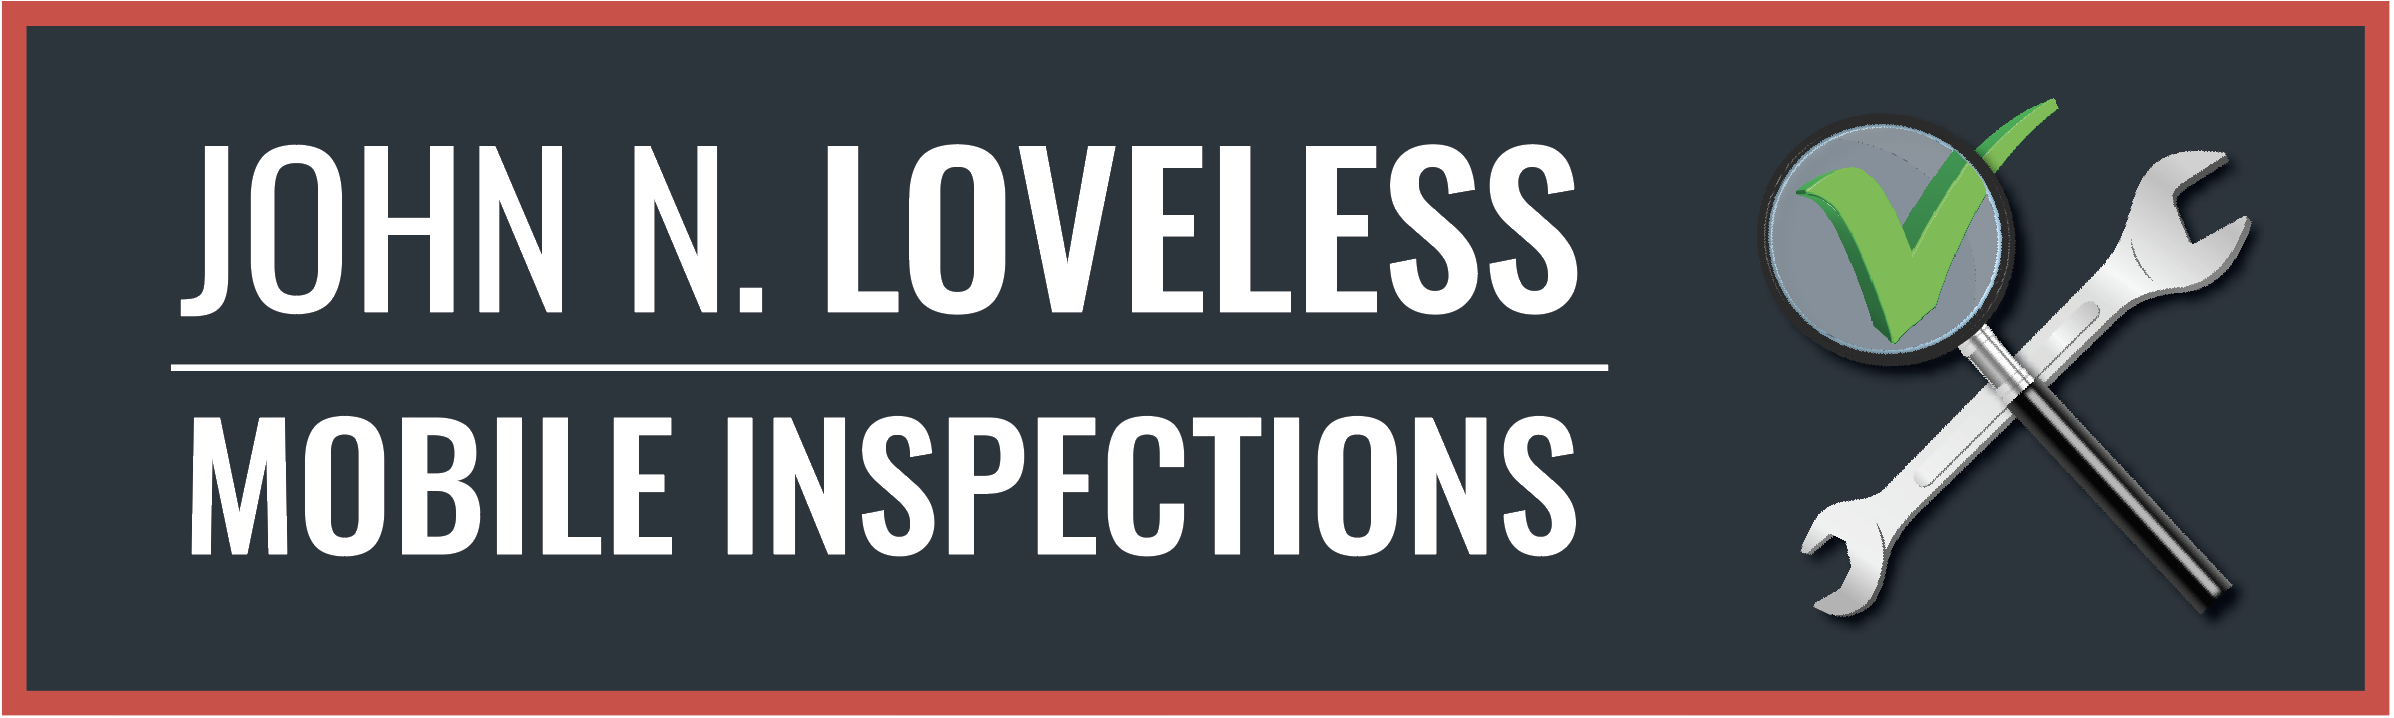 John N. Loveless Mobile Inspections